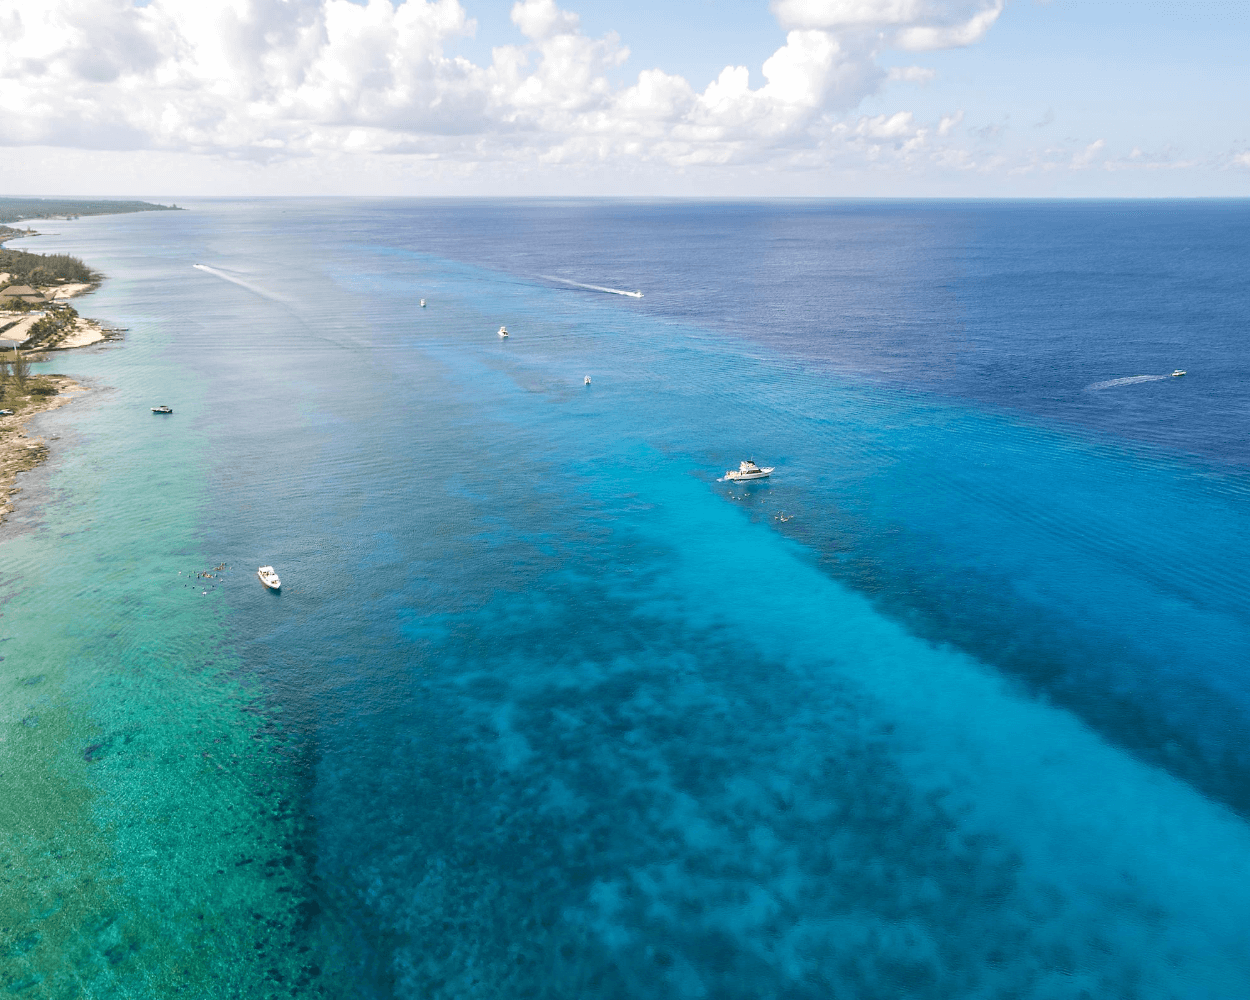 aerial view of boats and snorkel tours at paradise reef off the coast of cozumel mexico